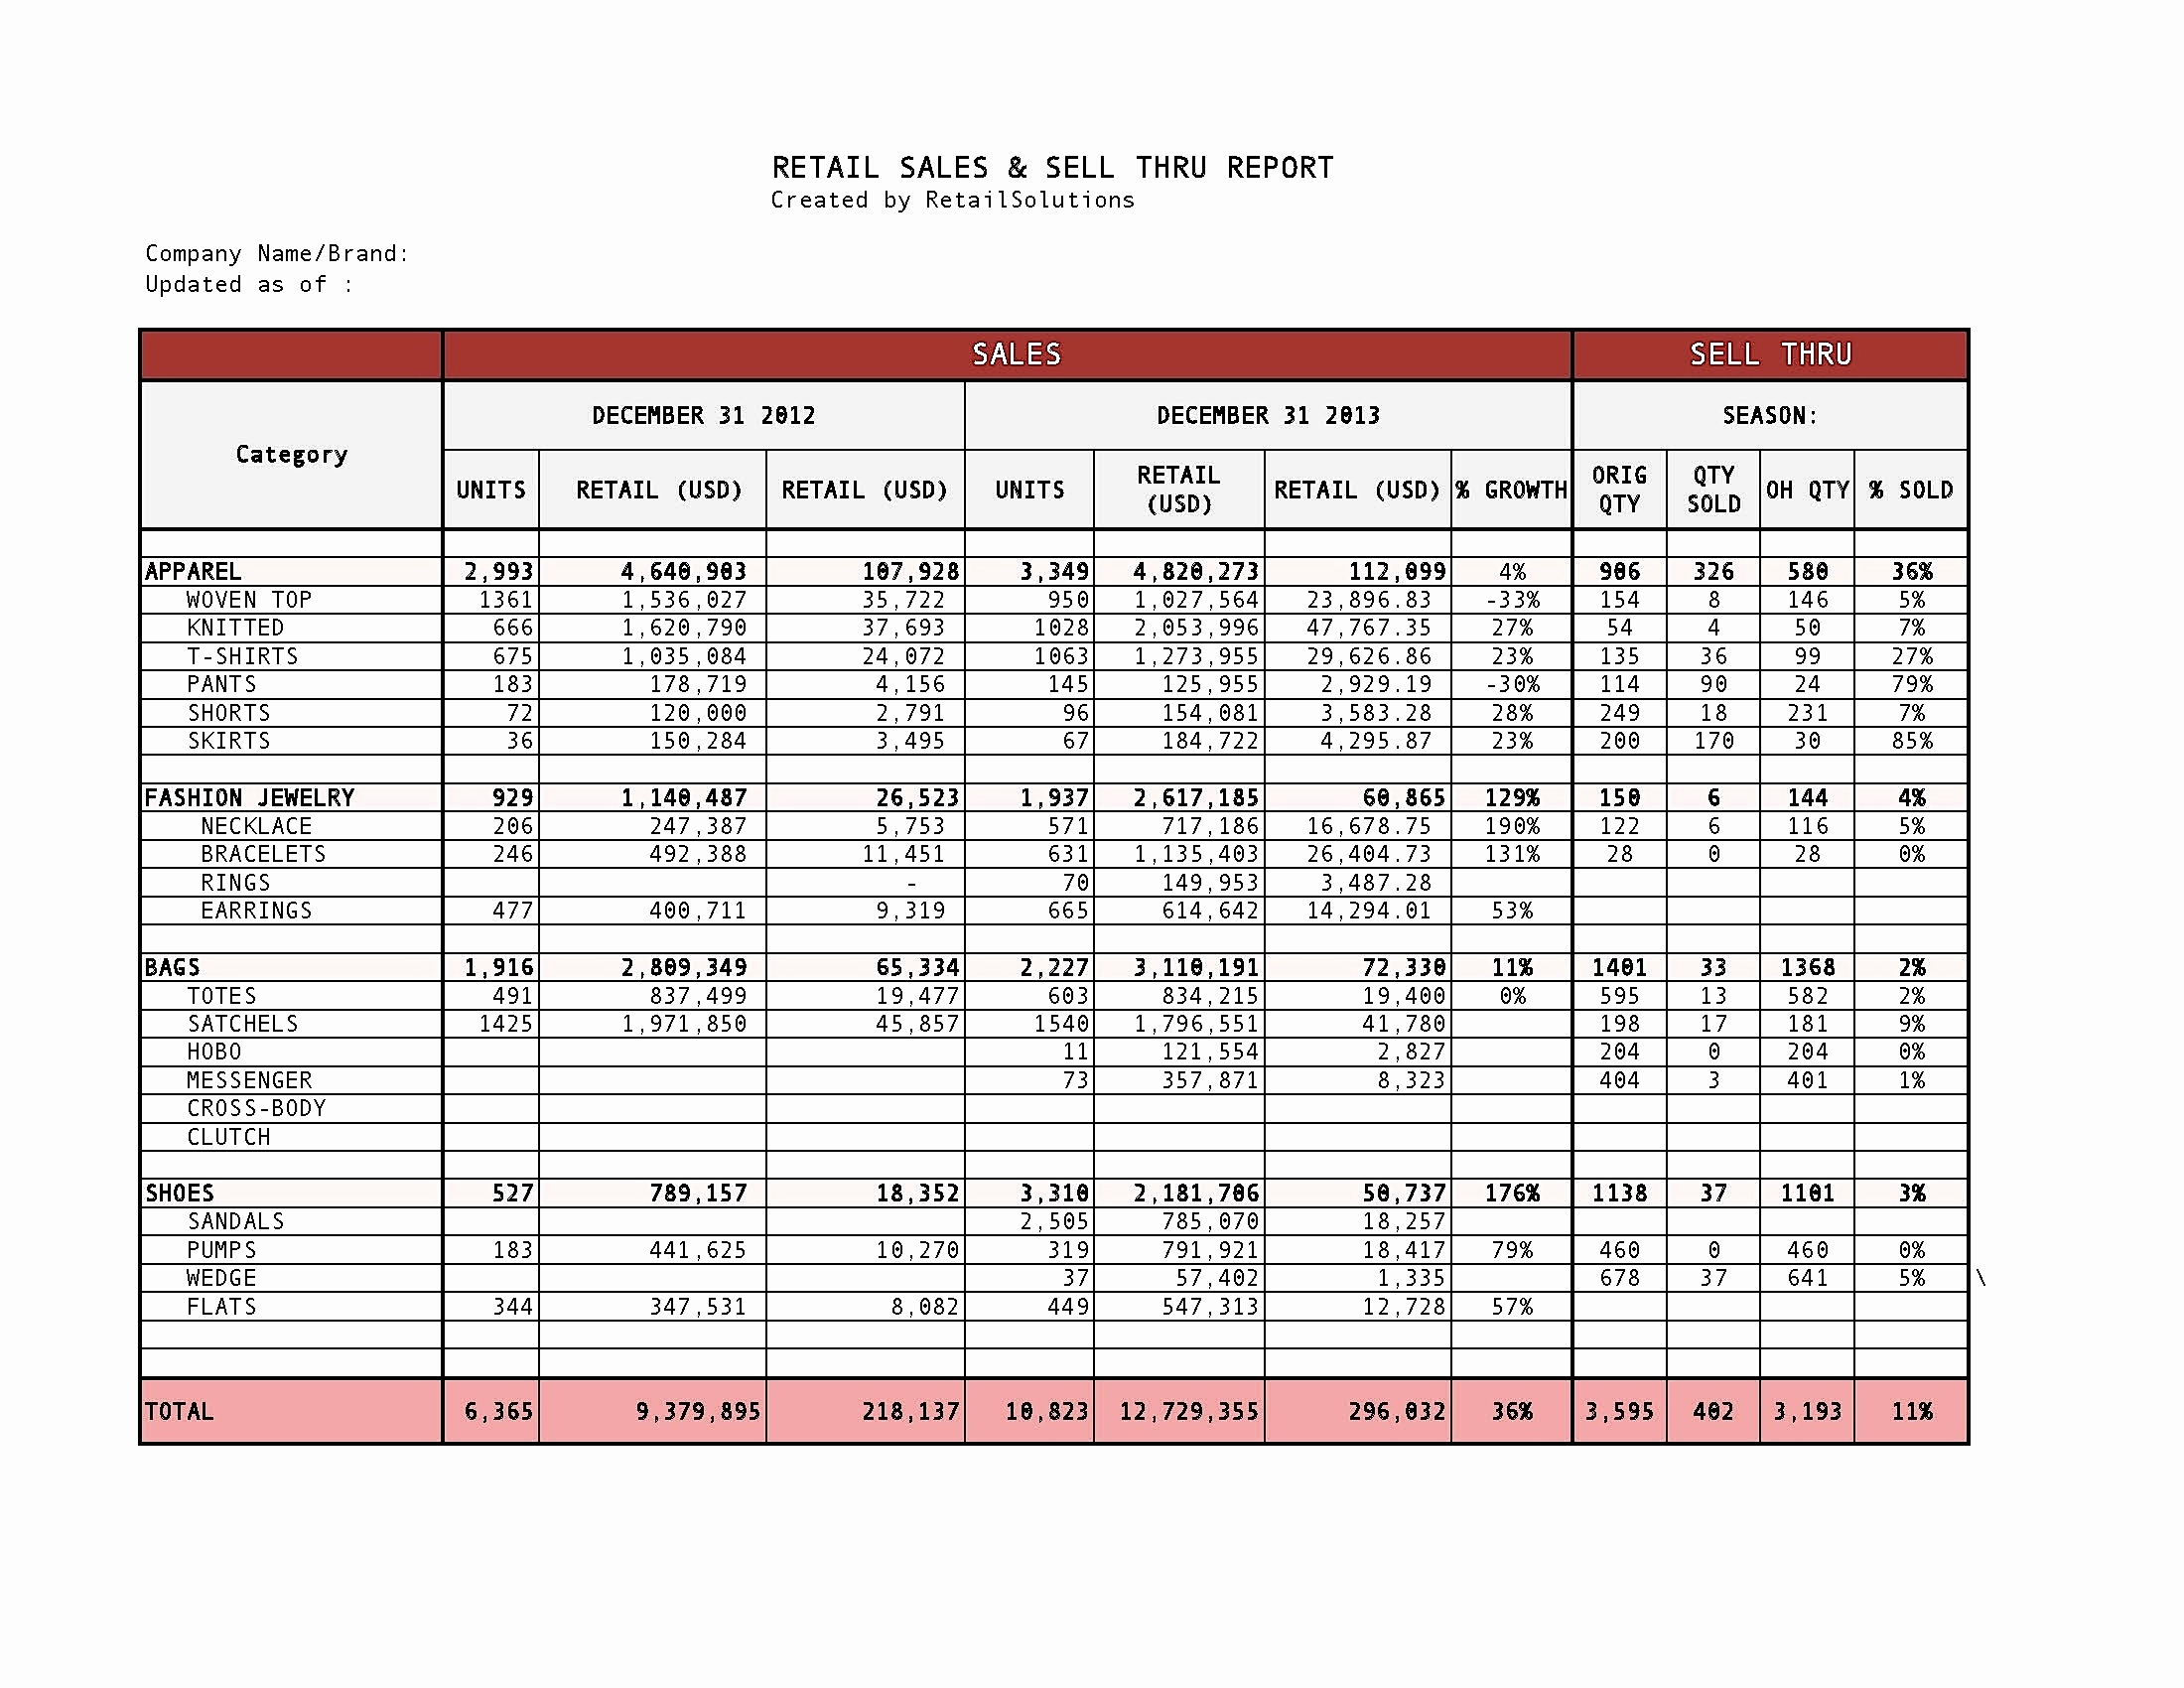 Invoice Tracking Template Excel Best Of Invoice Tracking Spreadsheet Template Spreadsheet softwar